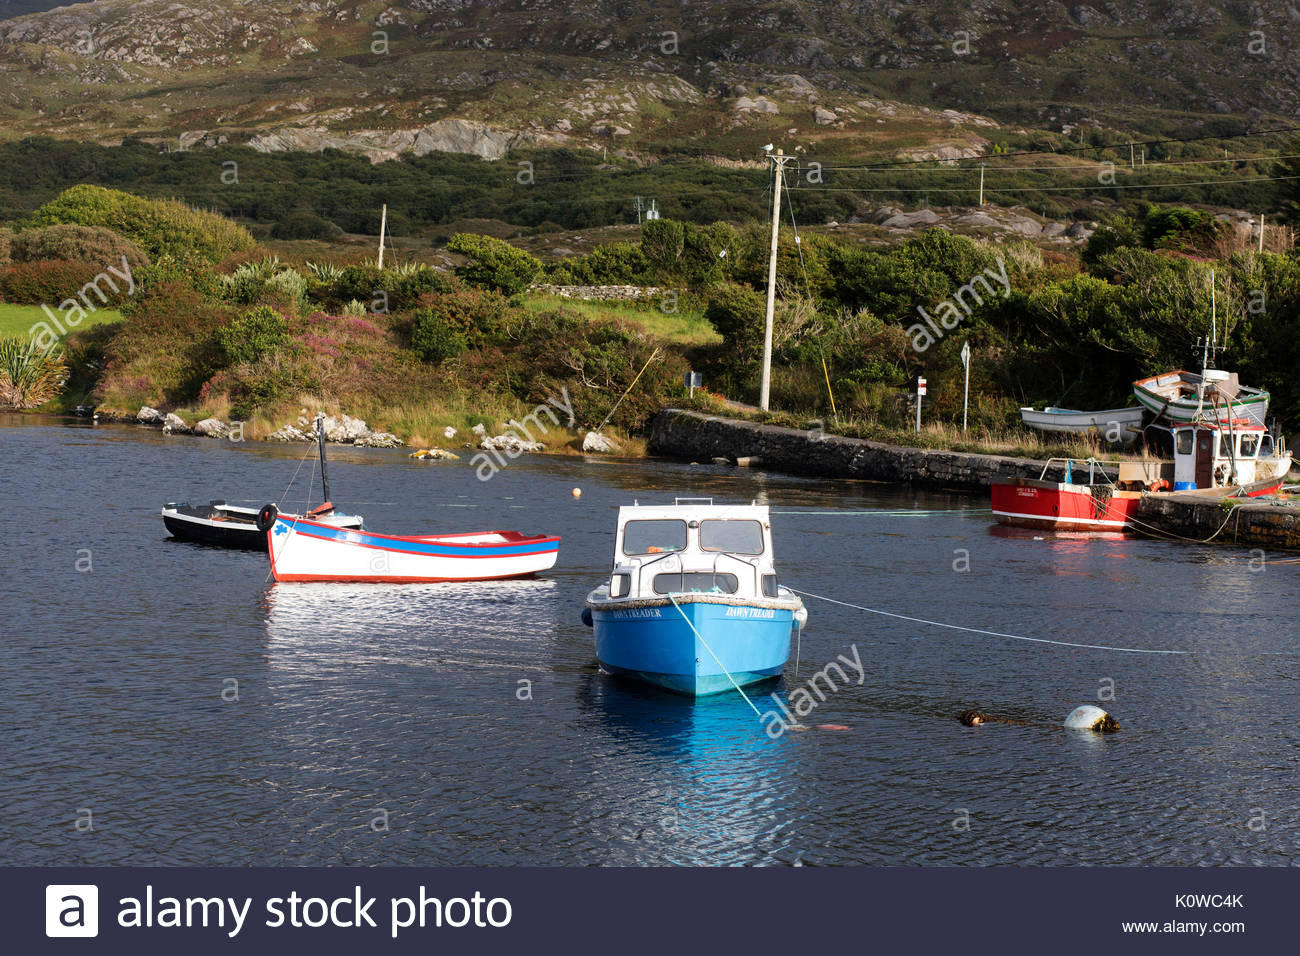 Harbour scene in small fishing stock photos harbour for Inshore fishing boats